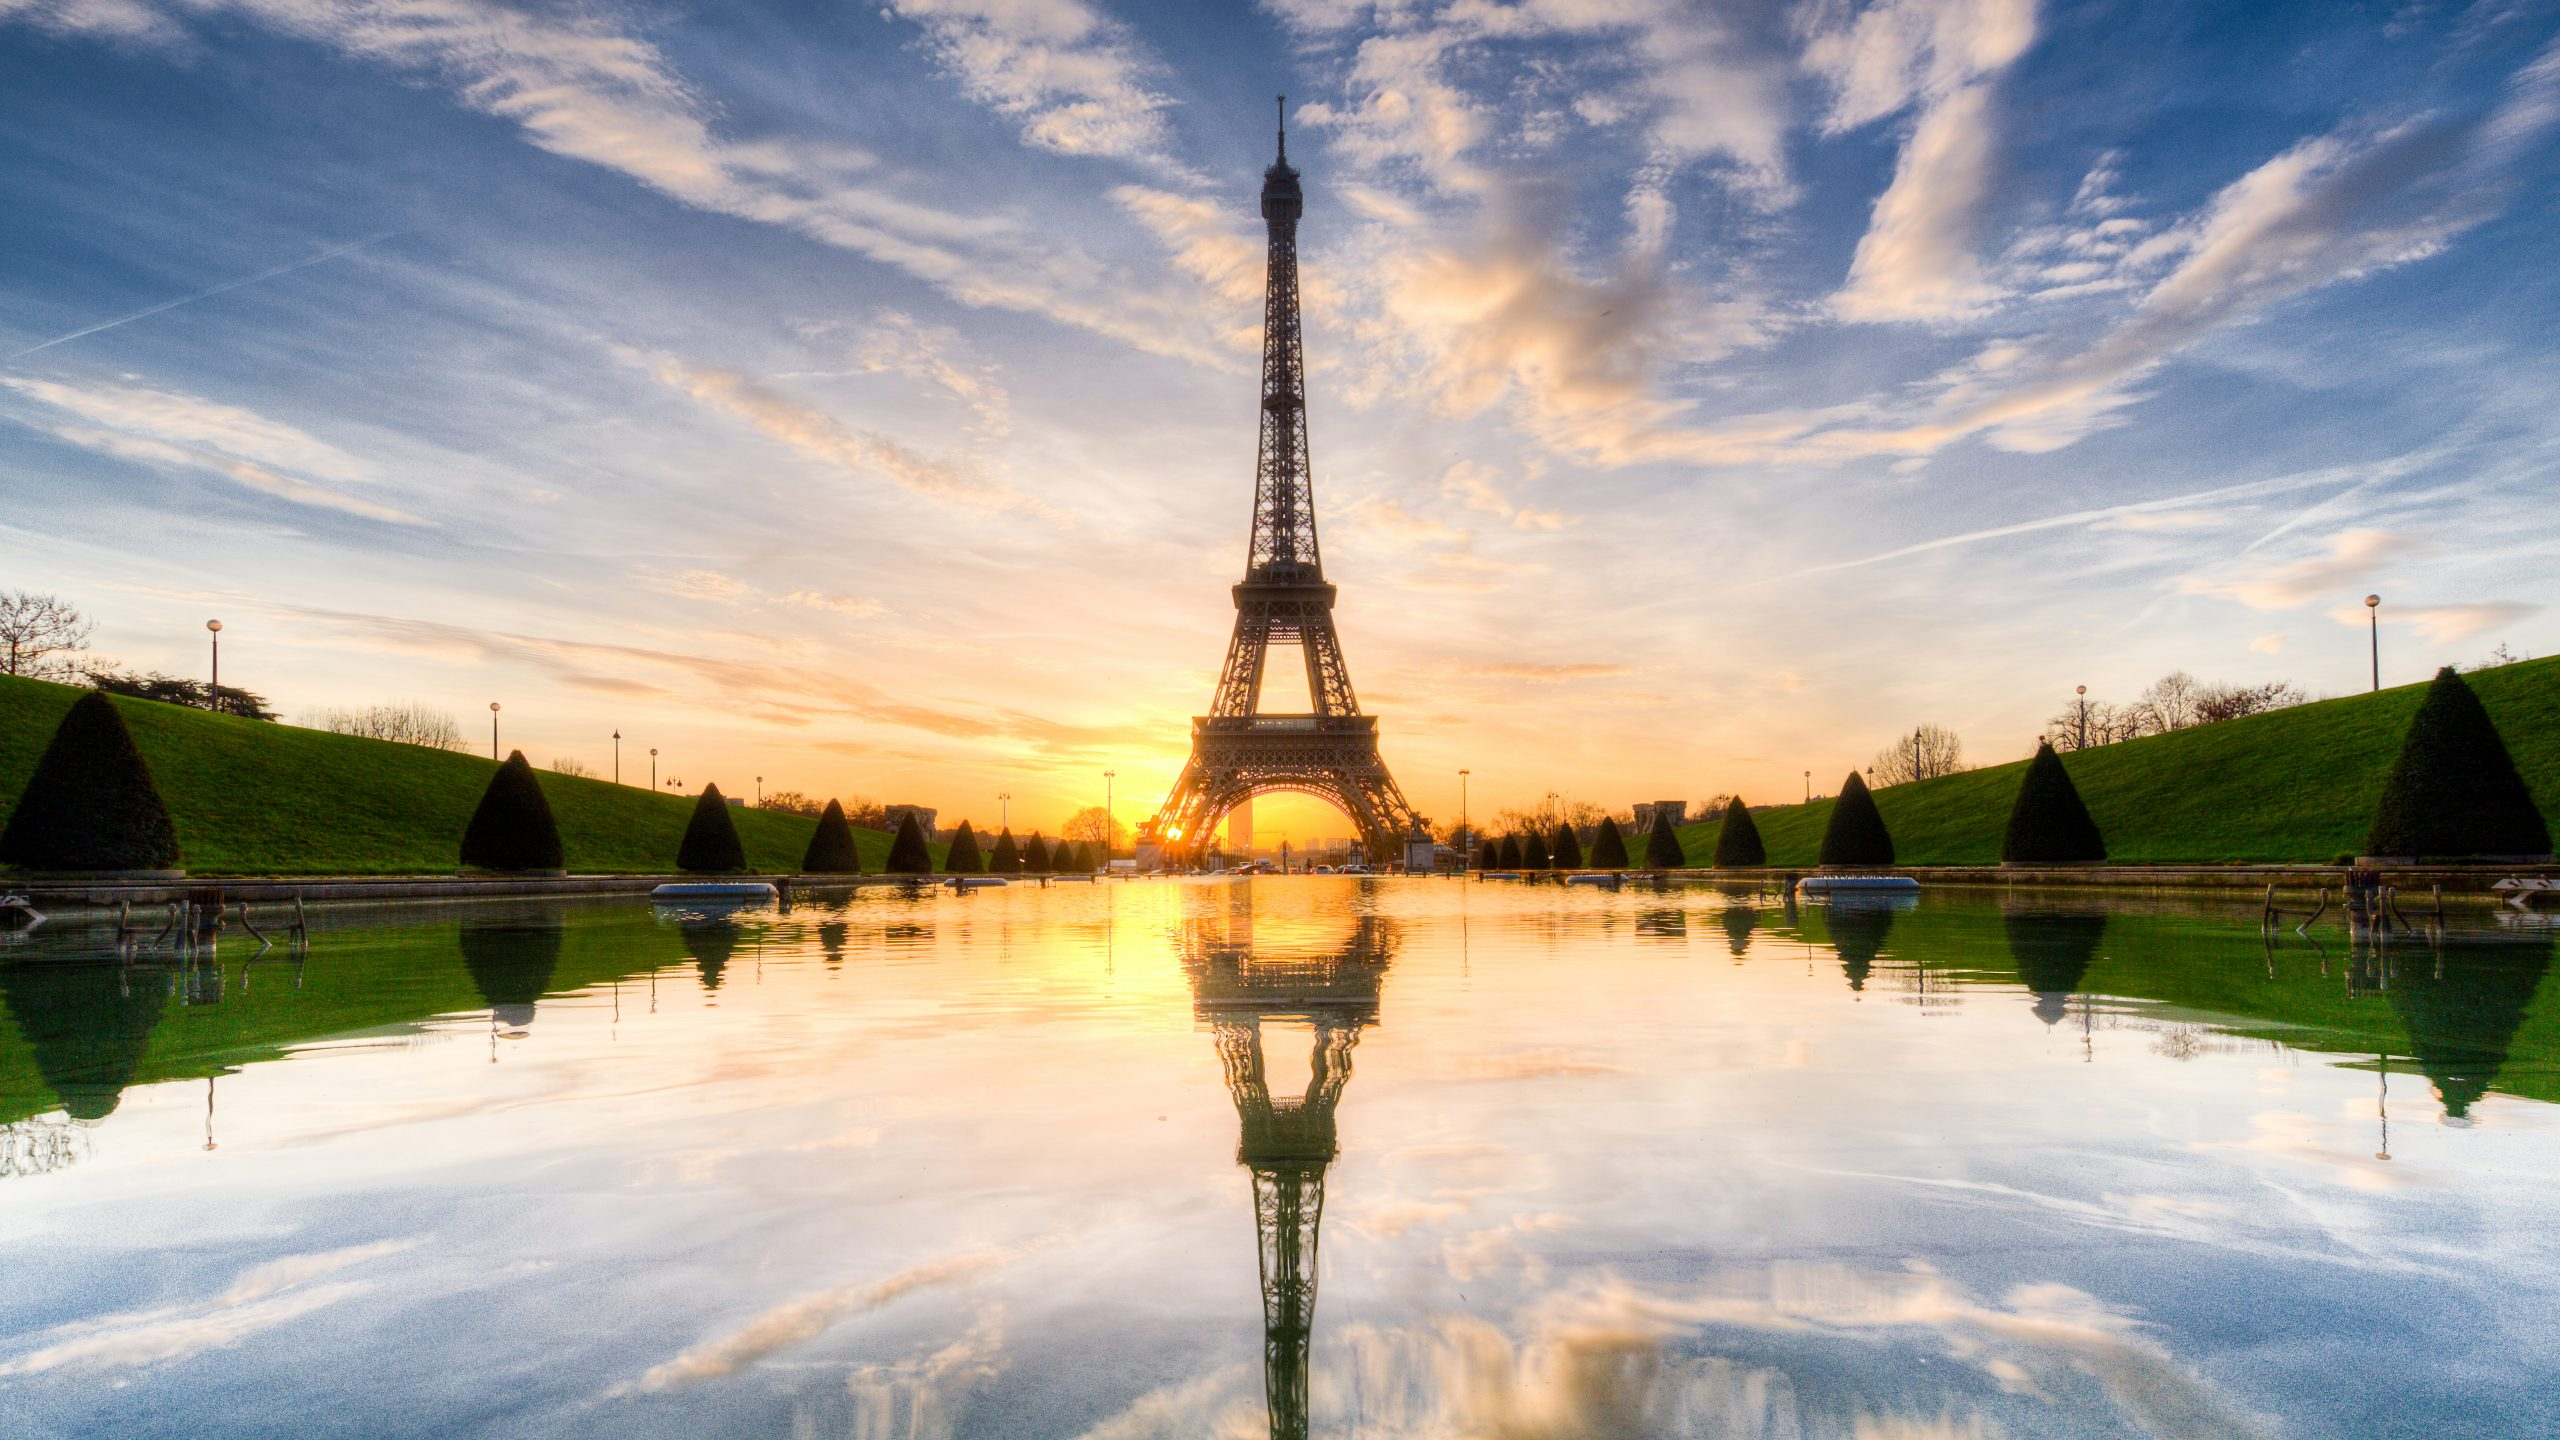 eiffel tower and reflection on water with blue sky and clouds background during sunrise 4k 5k hd travel wallpapers